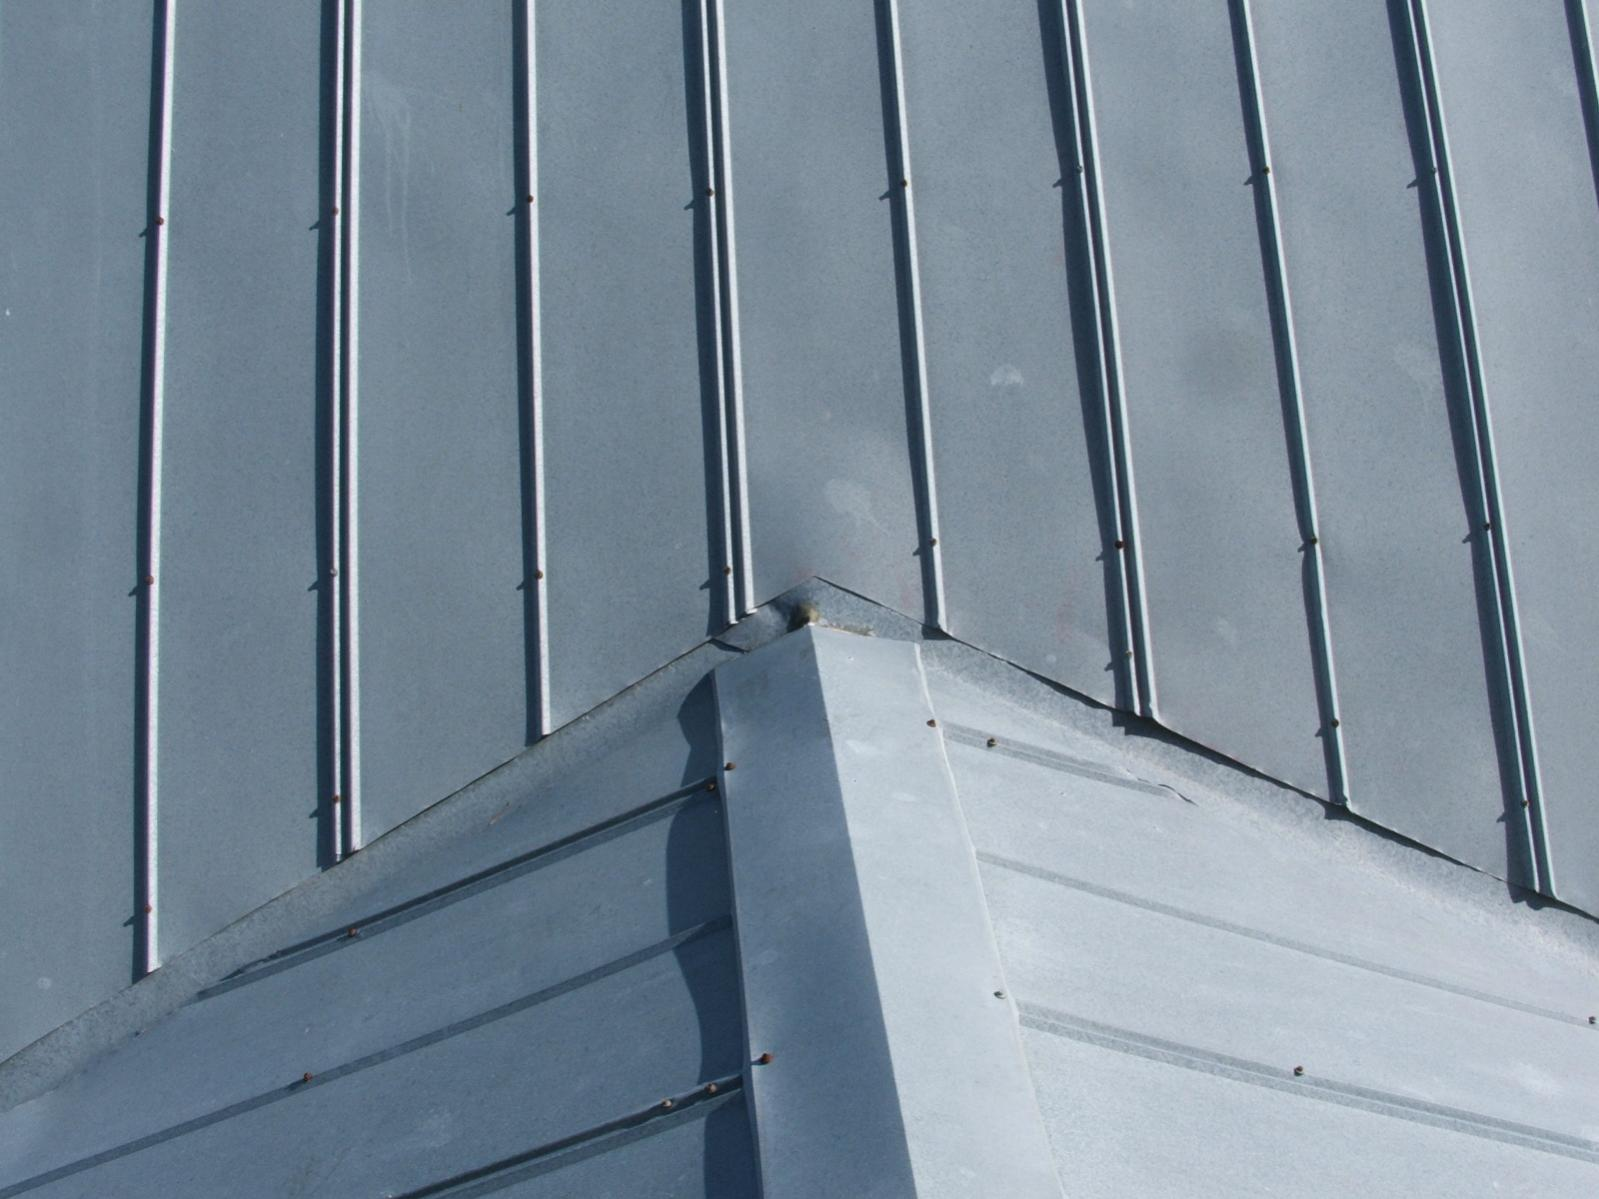 Slanting The Rain Diverter Hutchins Roofing Sheet Metal Co Job Photos Roofs    Rain Diverter